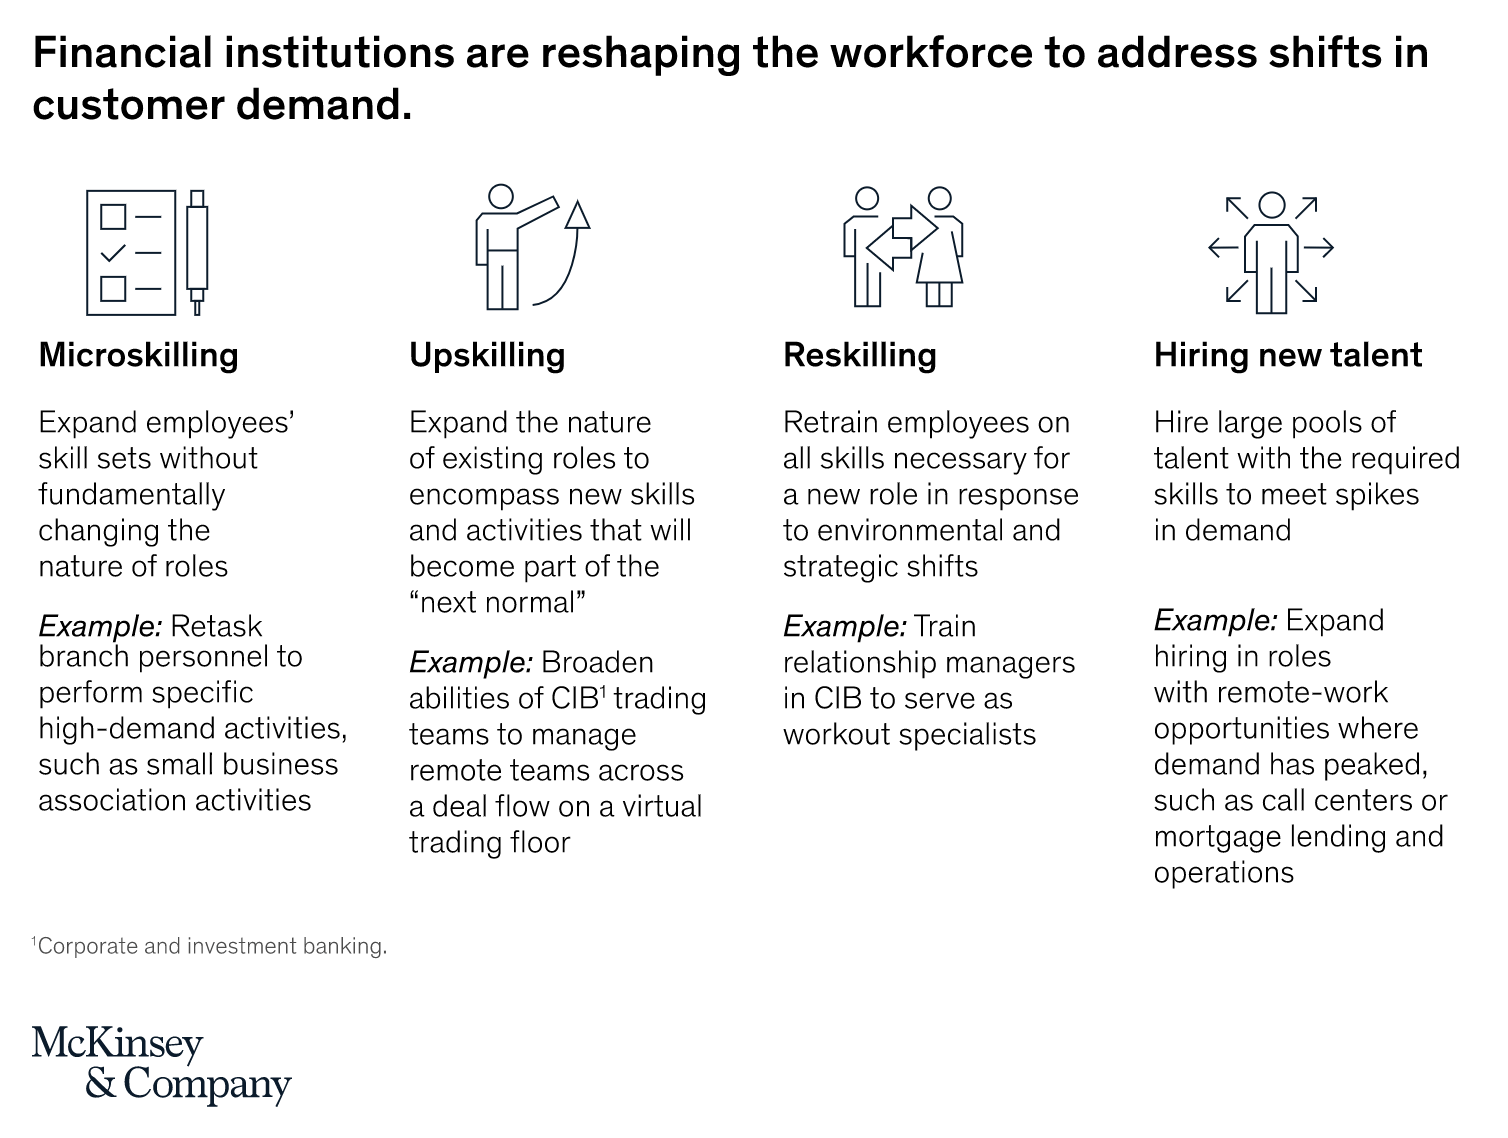 mckinsey microskilling, upskilling, reskilling, and hiring new talent